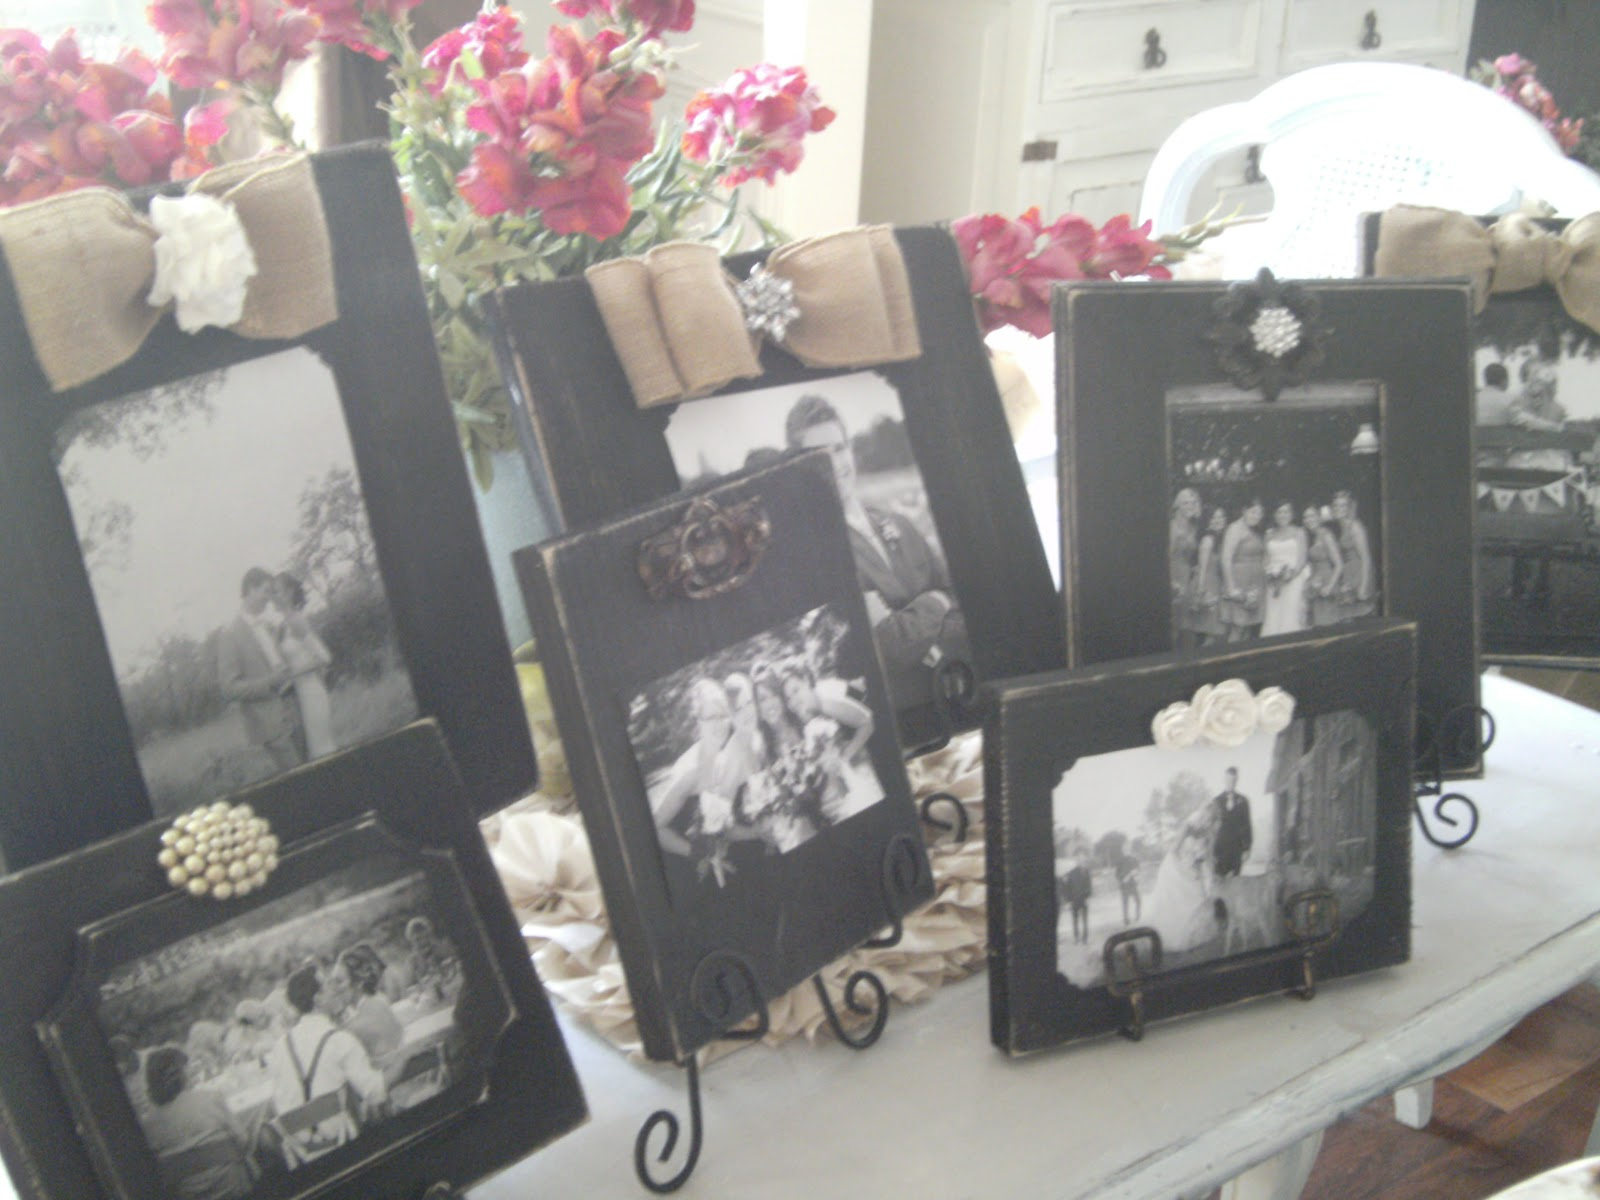 If You Are In The Birmingham Al Area And Would Like To Talk About A Custom Order For Frames Bridesmaids Gifts Memory Table Etc Feel Free Email